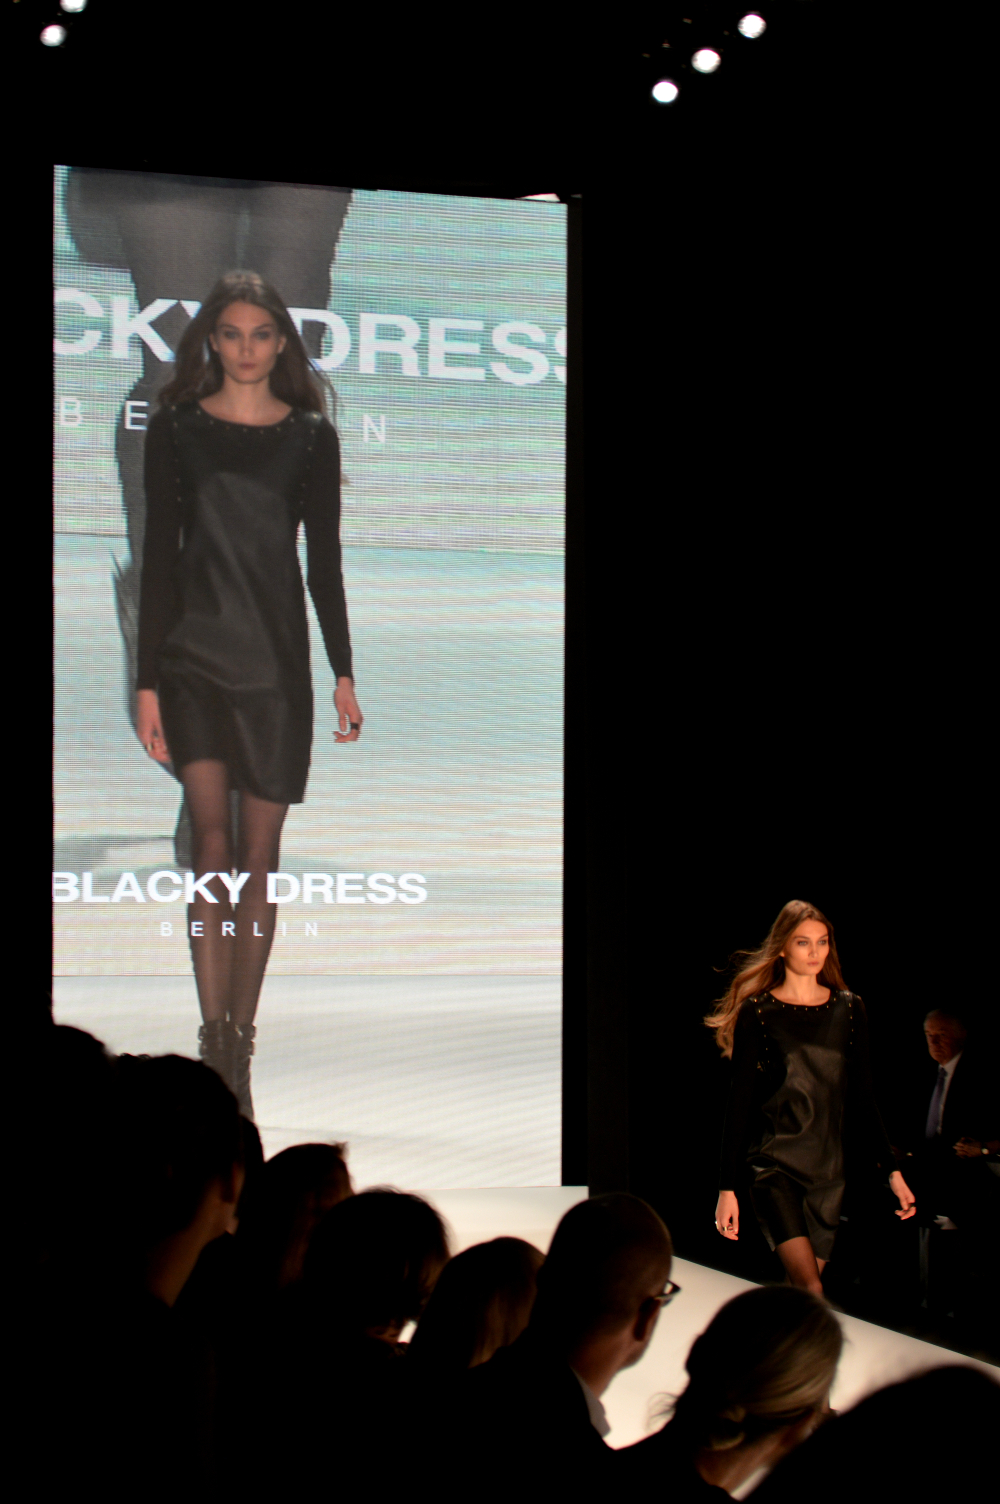 BerlinFashionWeekBlackyDress